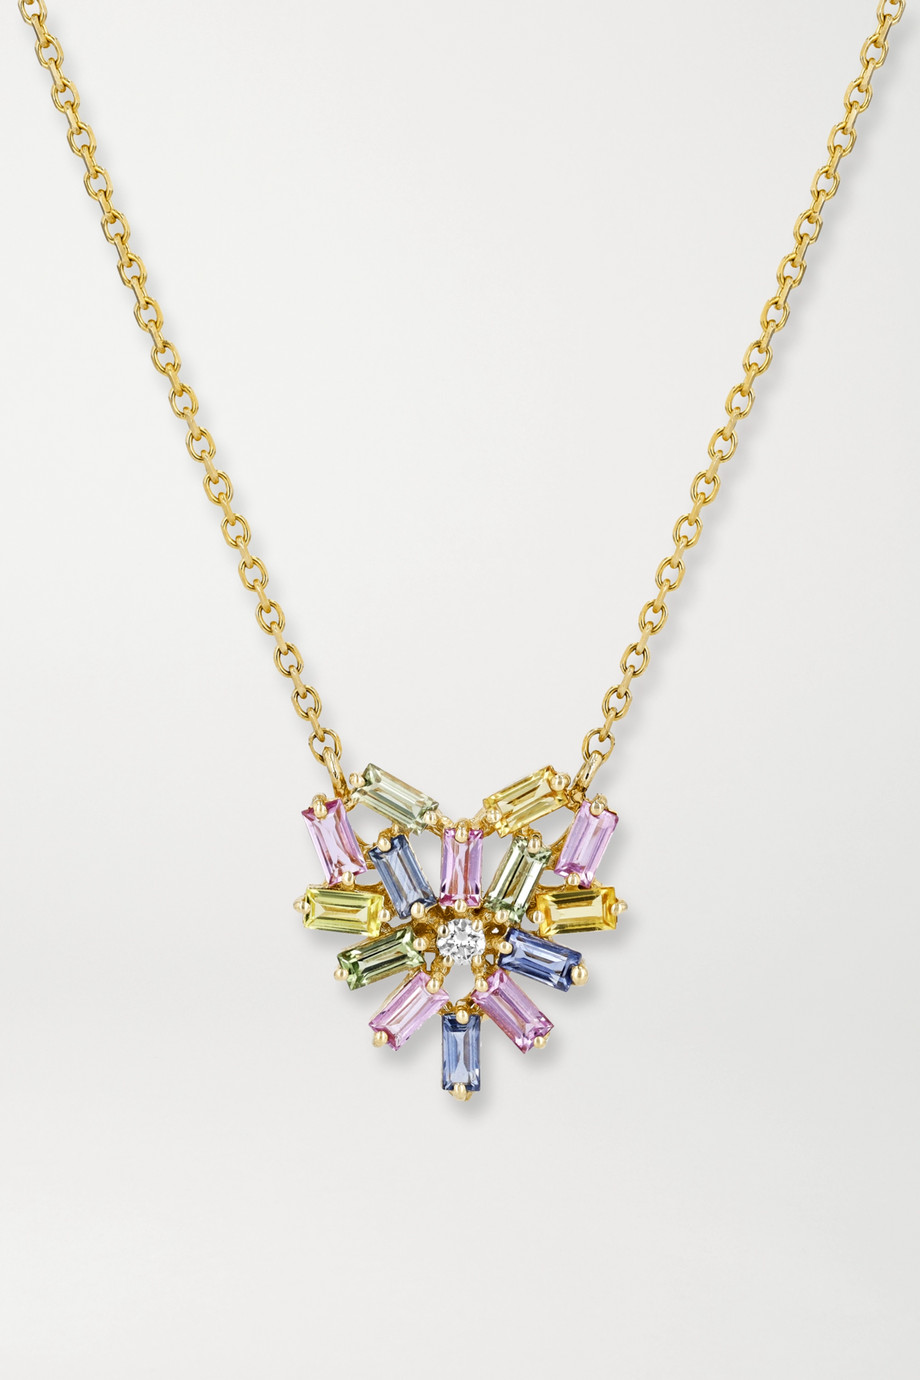 Suzanne Kalan 18-karat gold, sapphire and diamond necklace